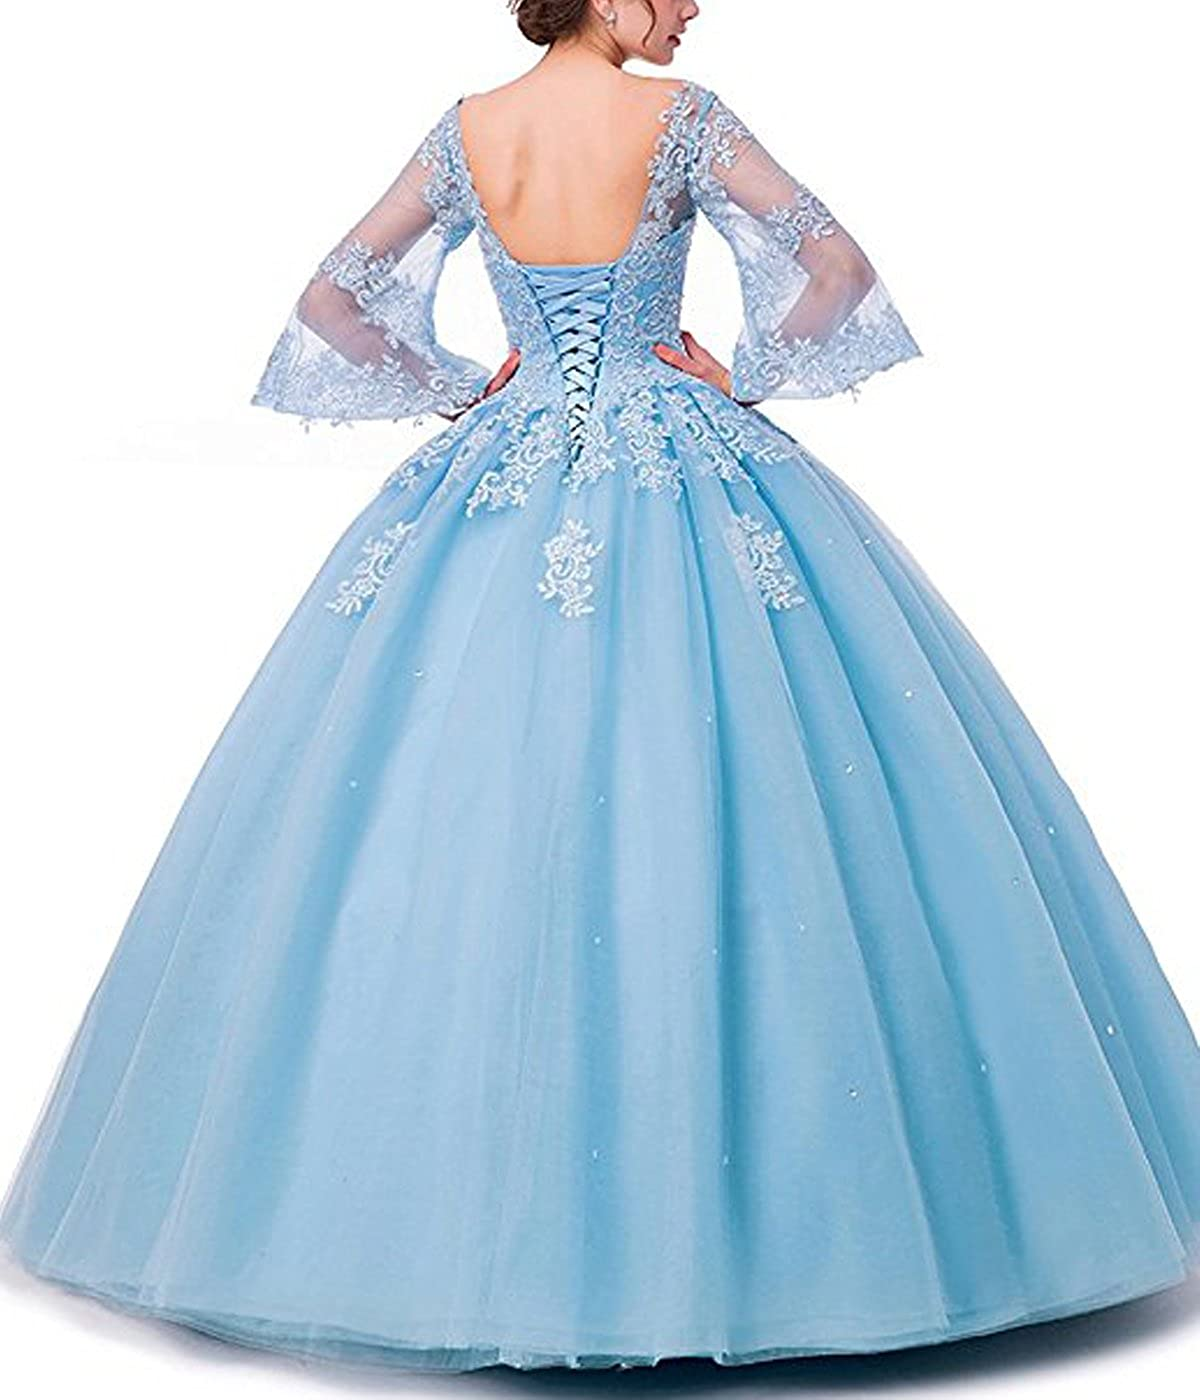 b0b4770d847 Long Sleeve Lace Quinceanera Dresses Ball Gown Formal Prom Dresses Princess  Gowns at Amazon Women s Clothing store